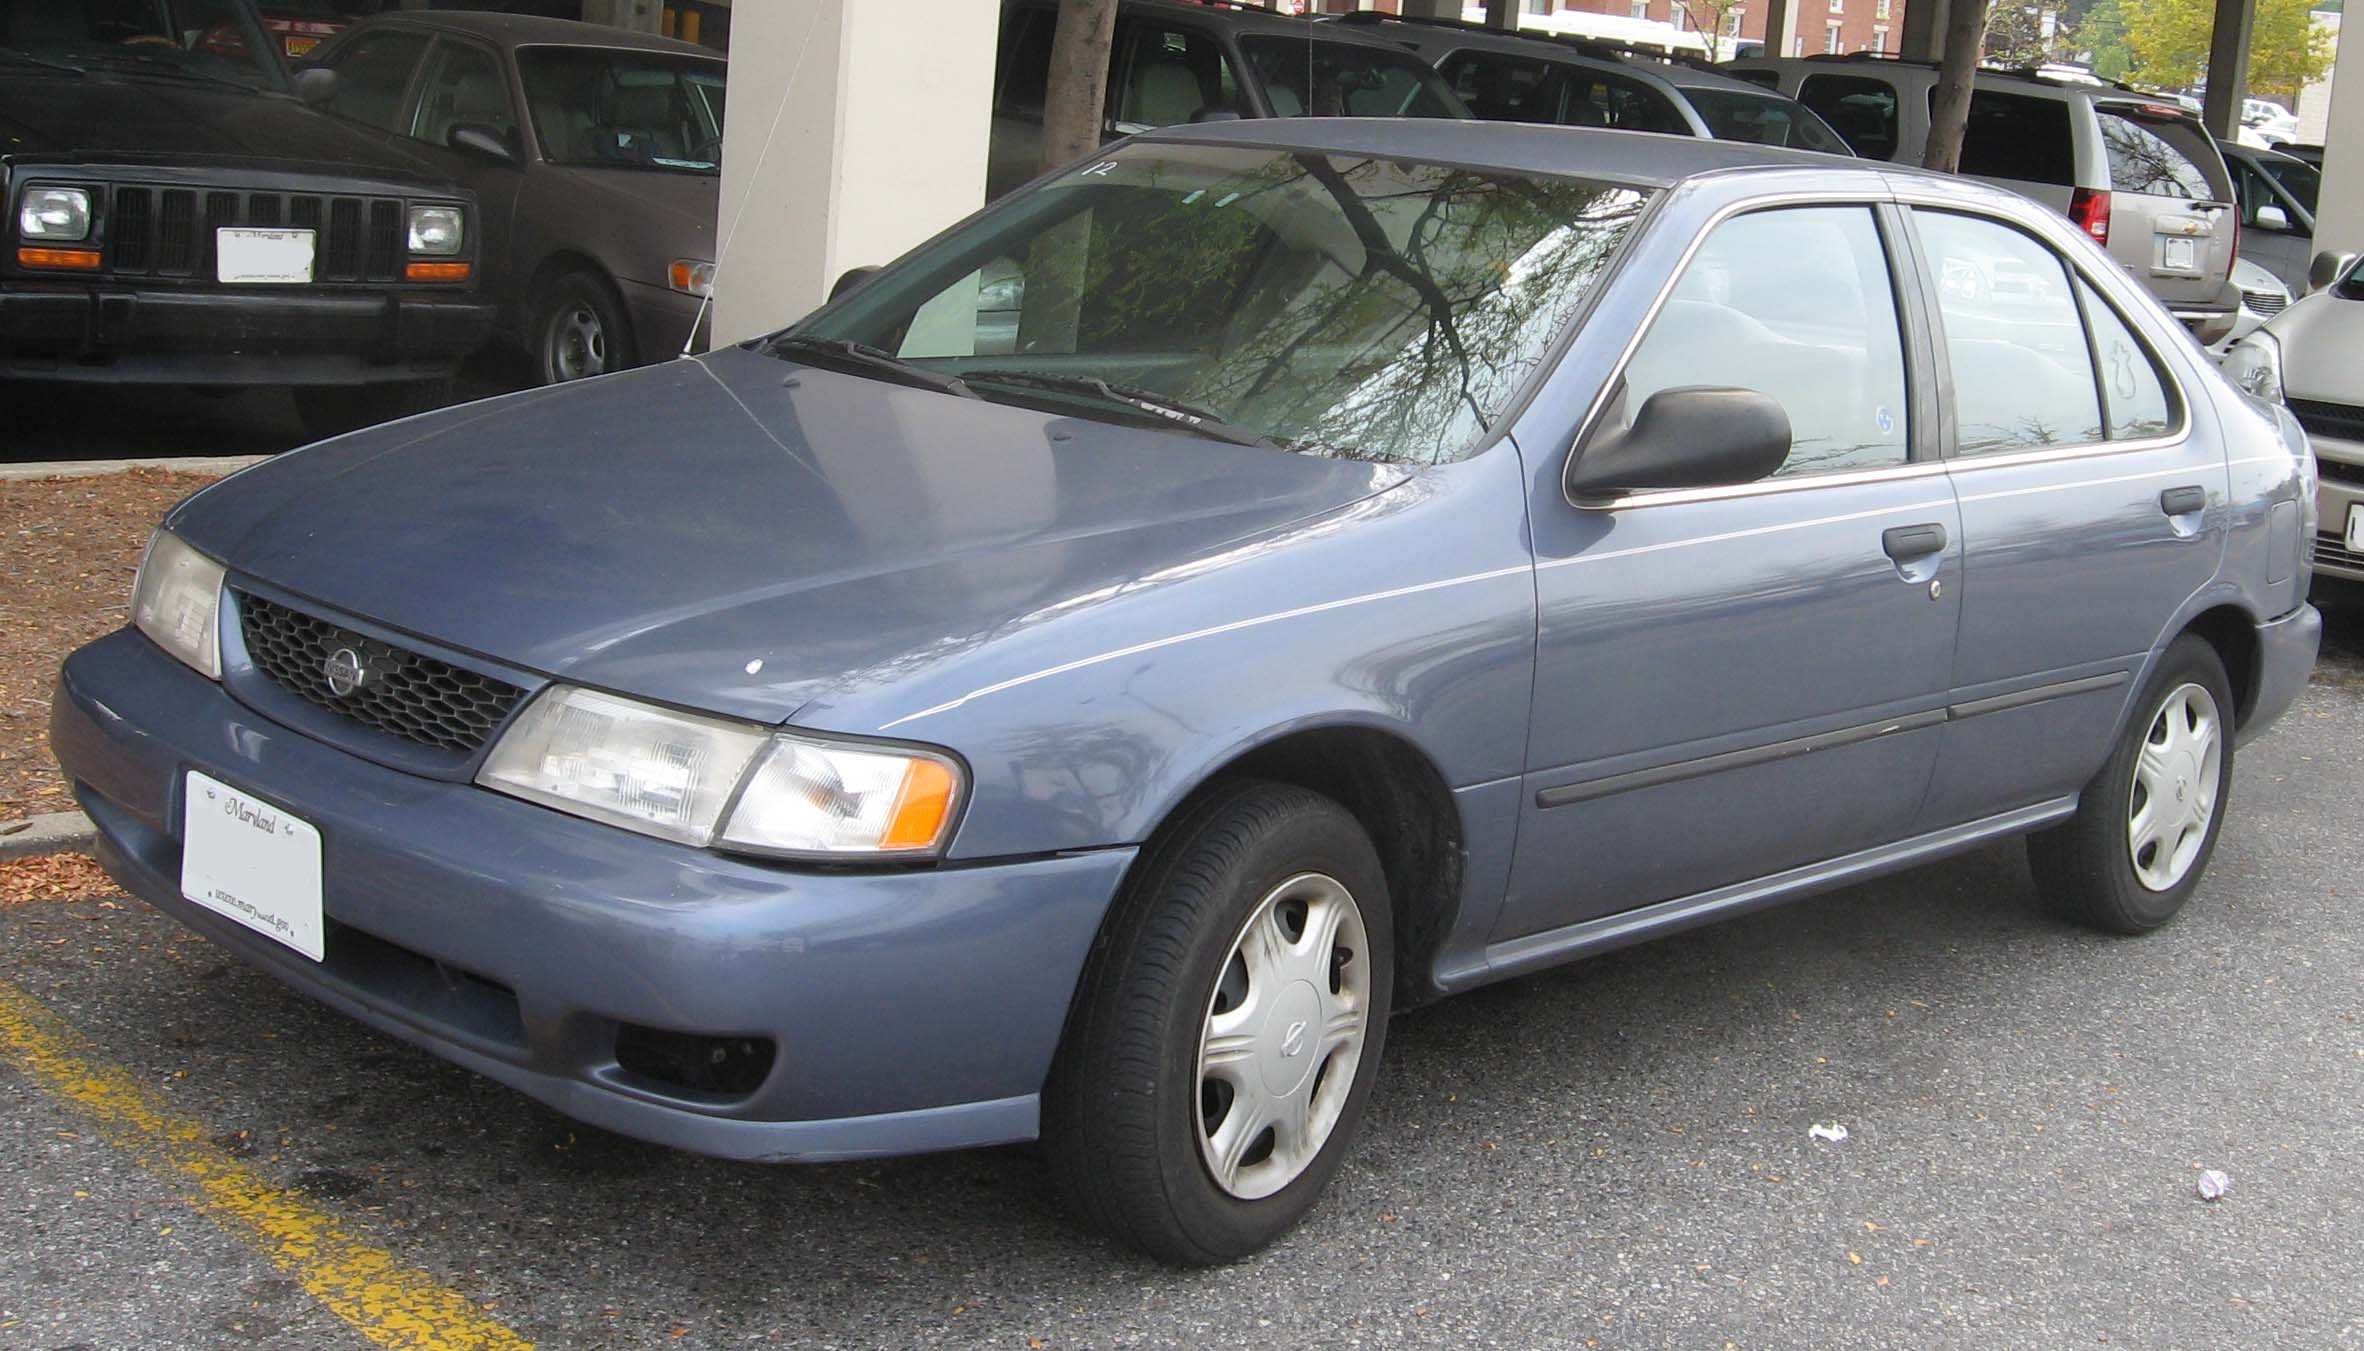 Altima Gxe 1998 >> File:98-Nissan-Sentra.jpg - Wikimedia Commons